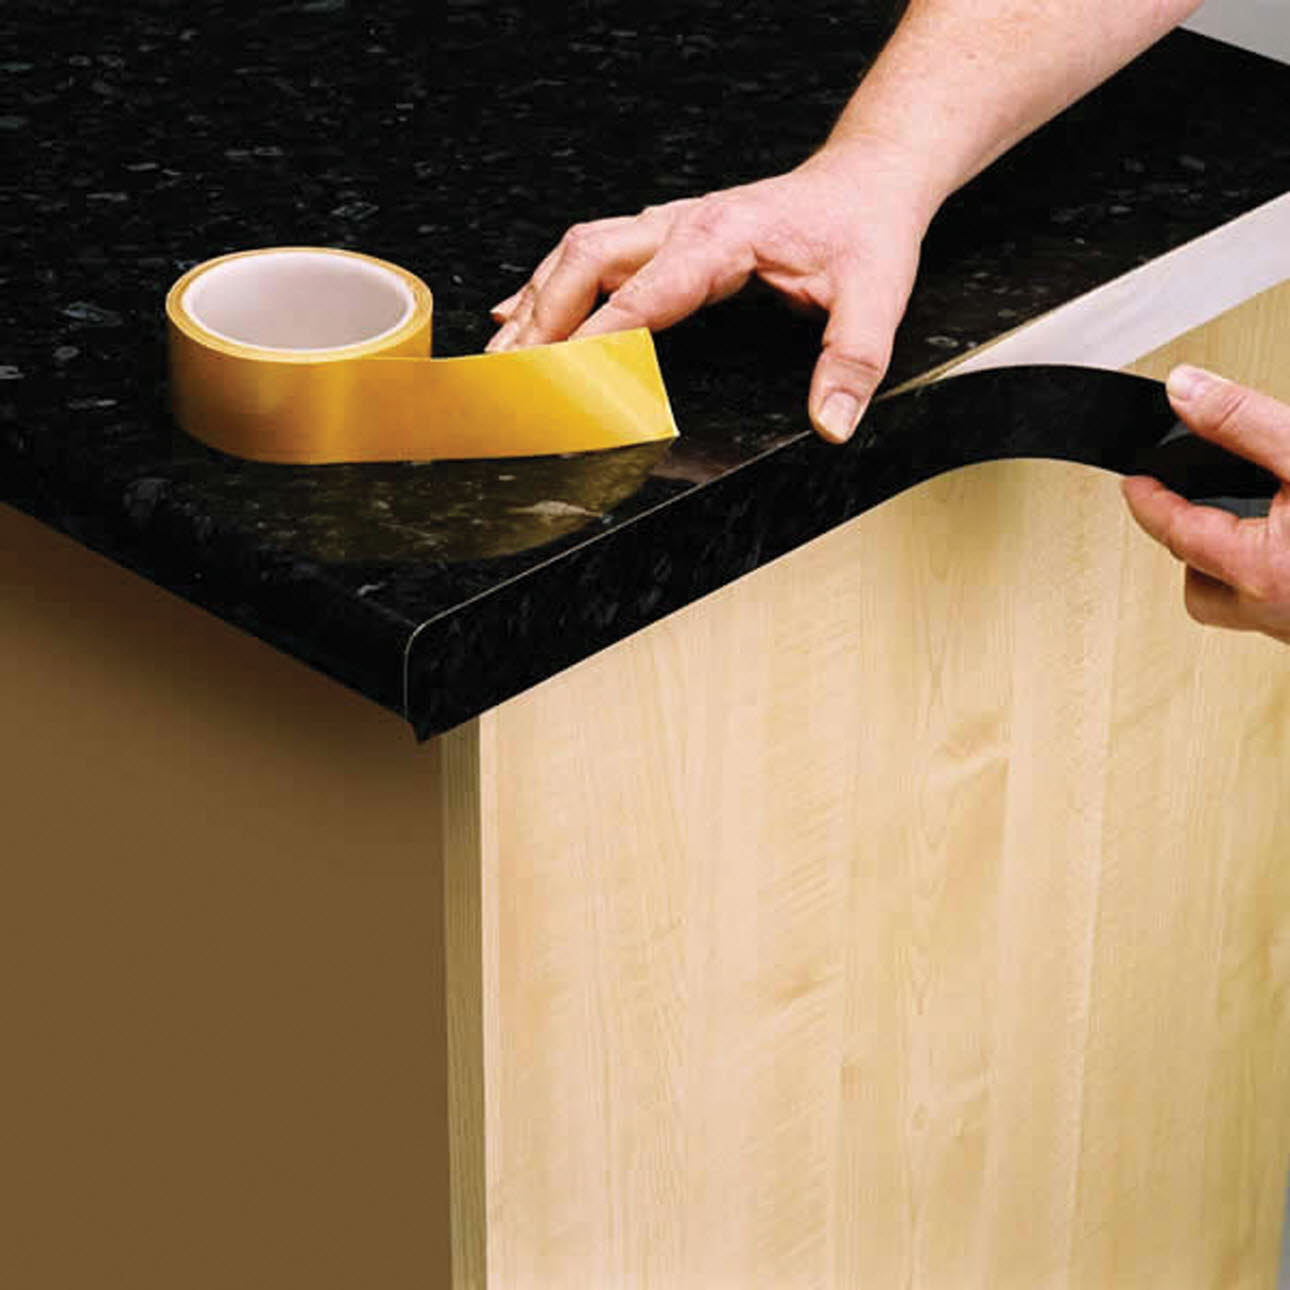 Yellow adhesive tape, placed on black kitchen worktop during installation